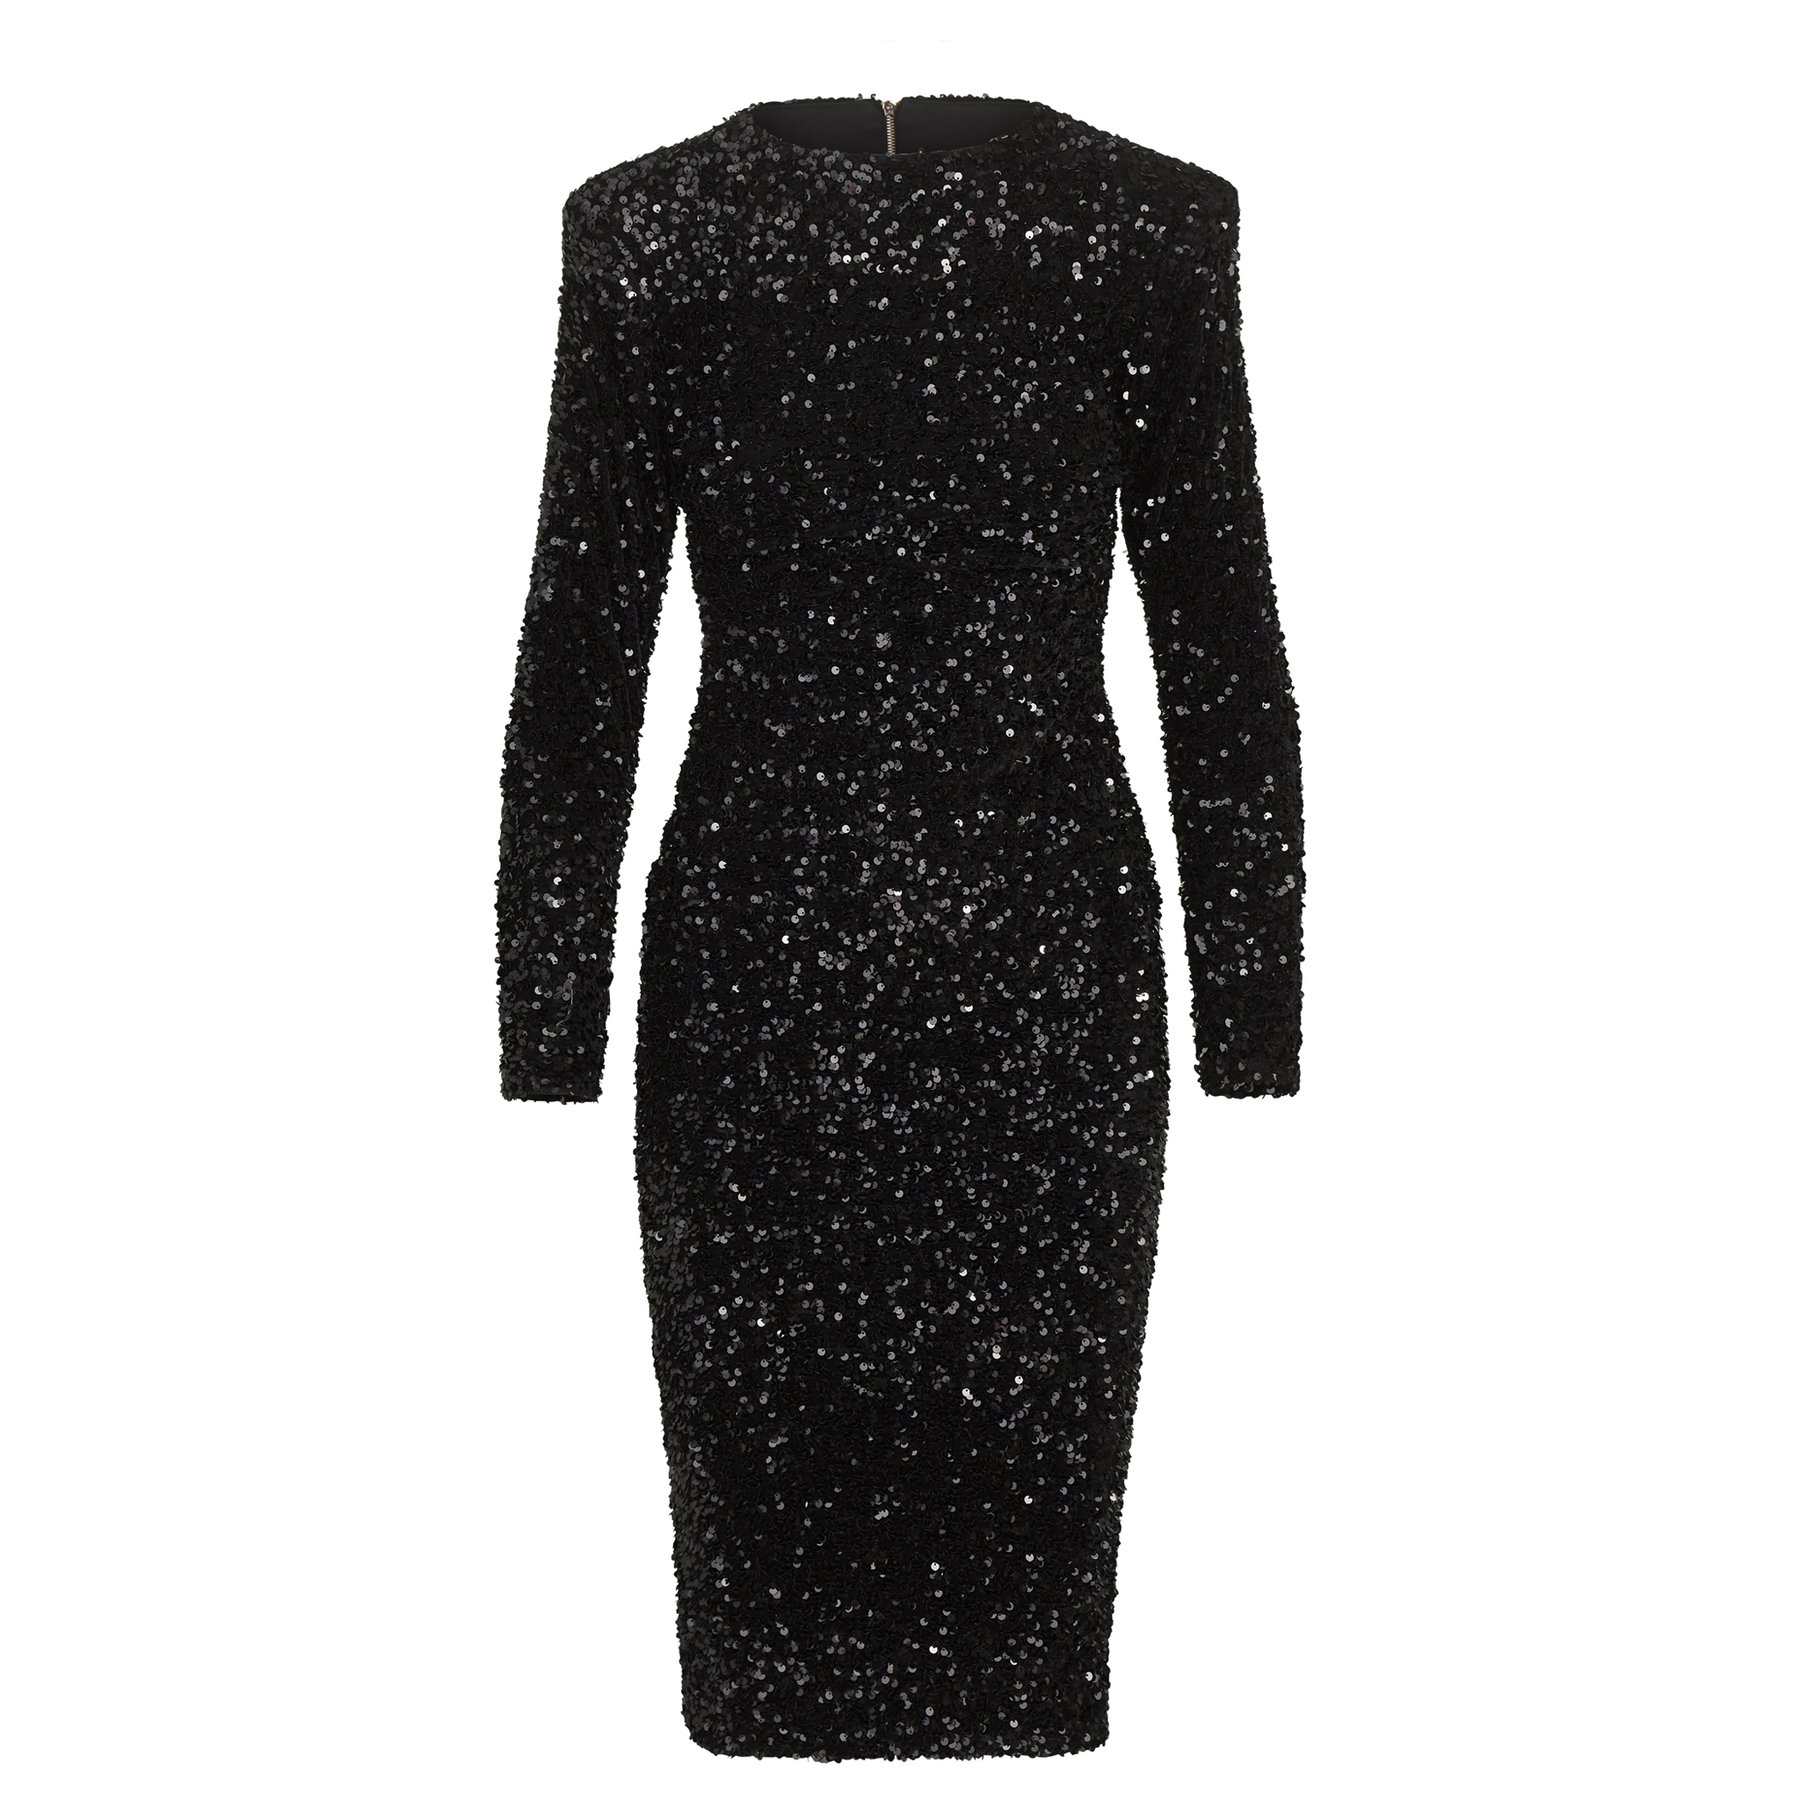 Sergio Hudson Bespoke Sequin Dress